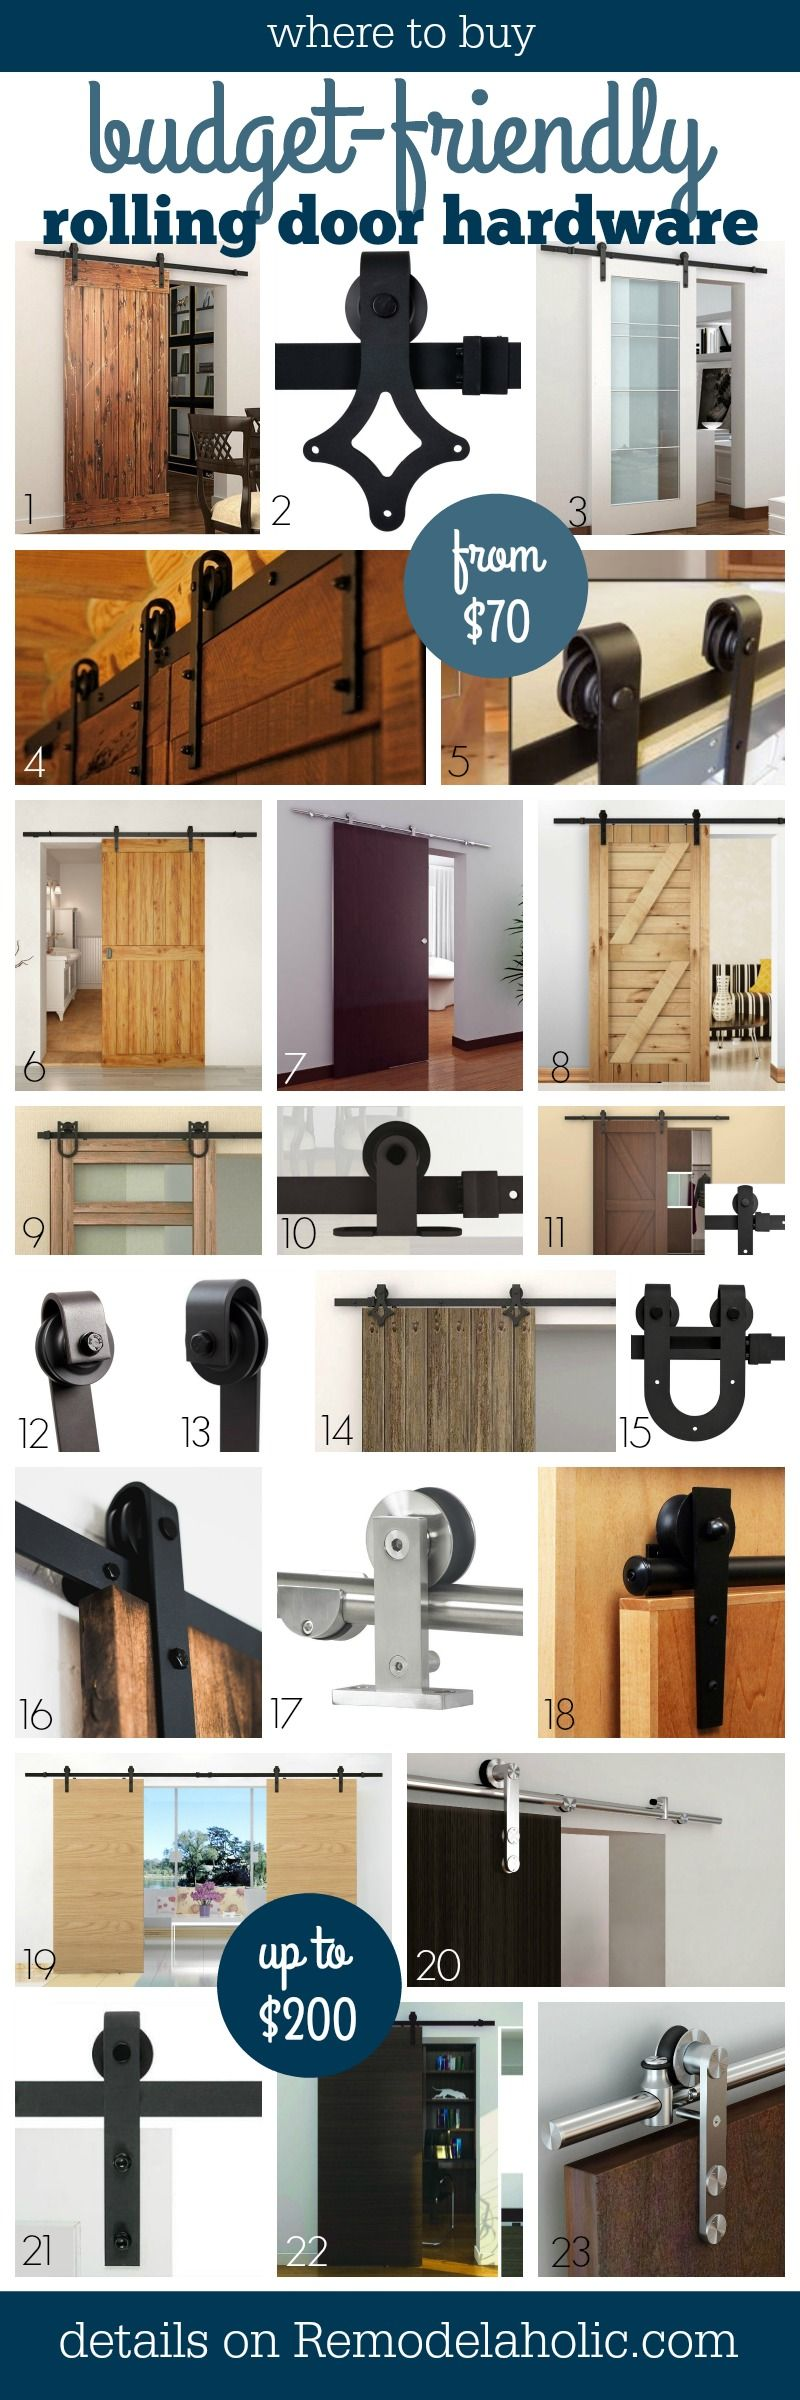 Barn door hardware shop and buy online - 35 Diy Barn Doors Rolling Door Hardware Ideas